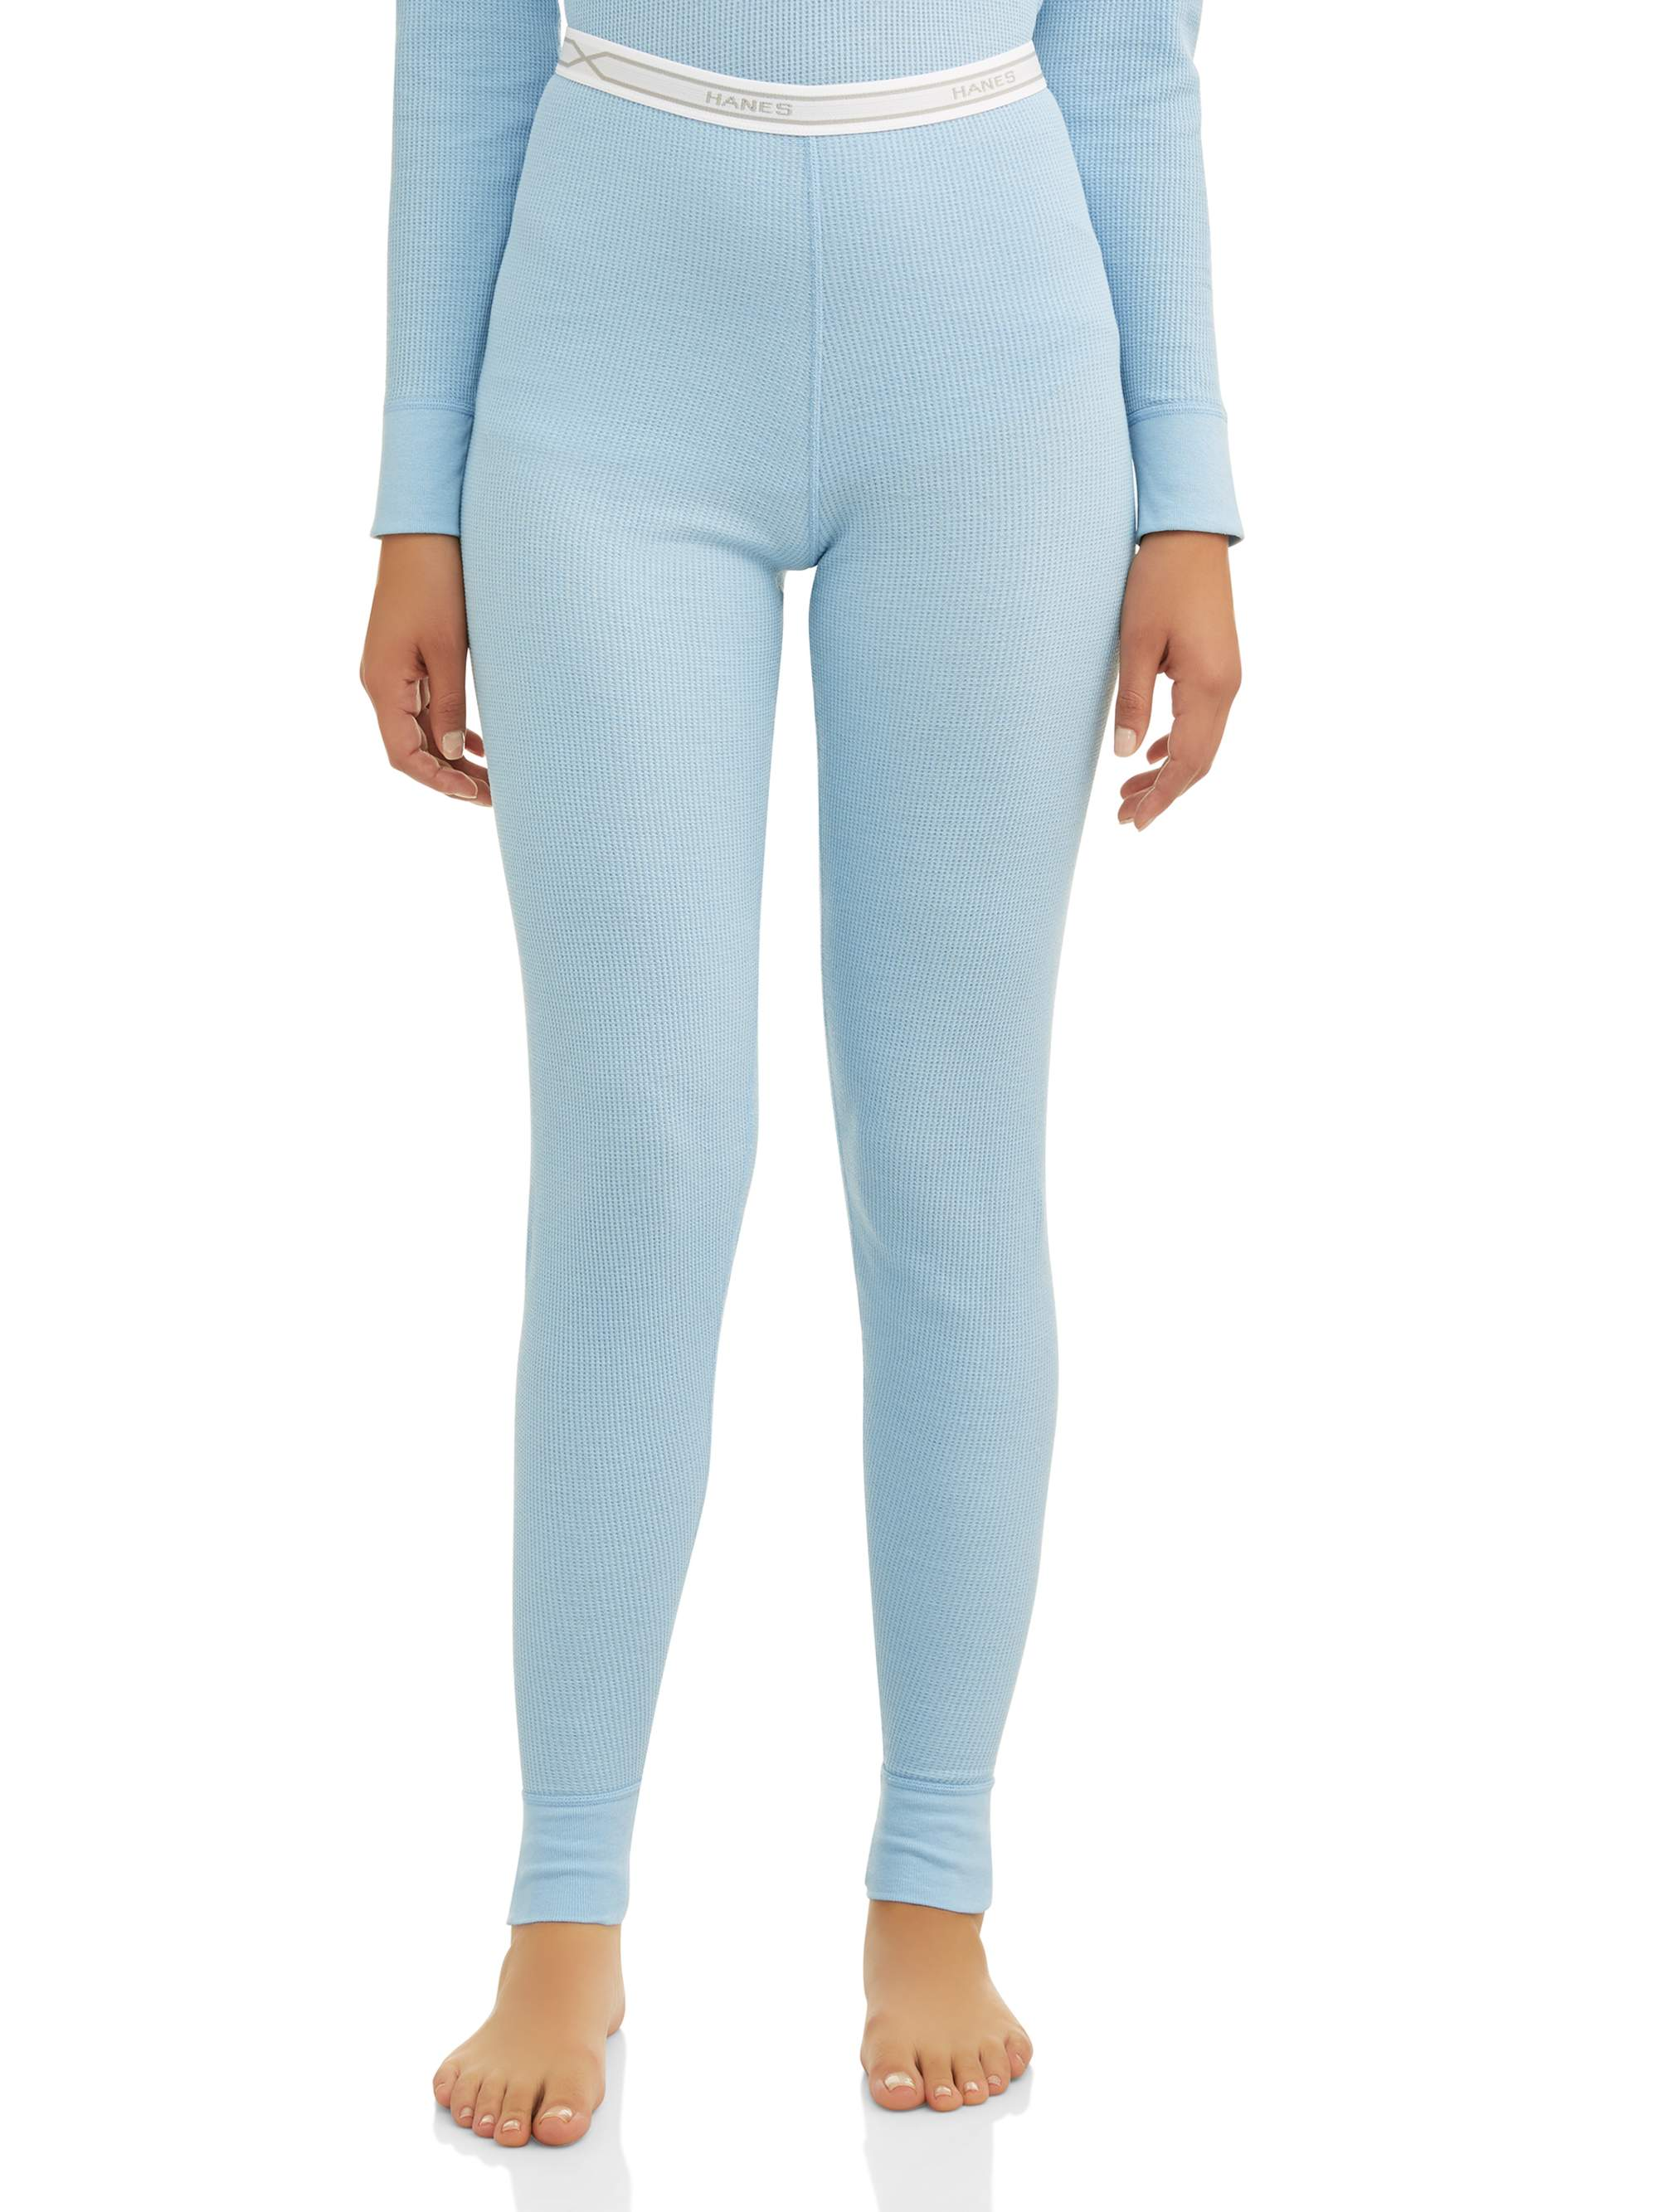 Hanes Boys X Temp Thermal Pant with Odor Control